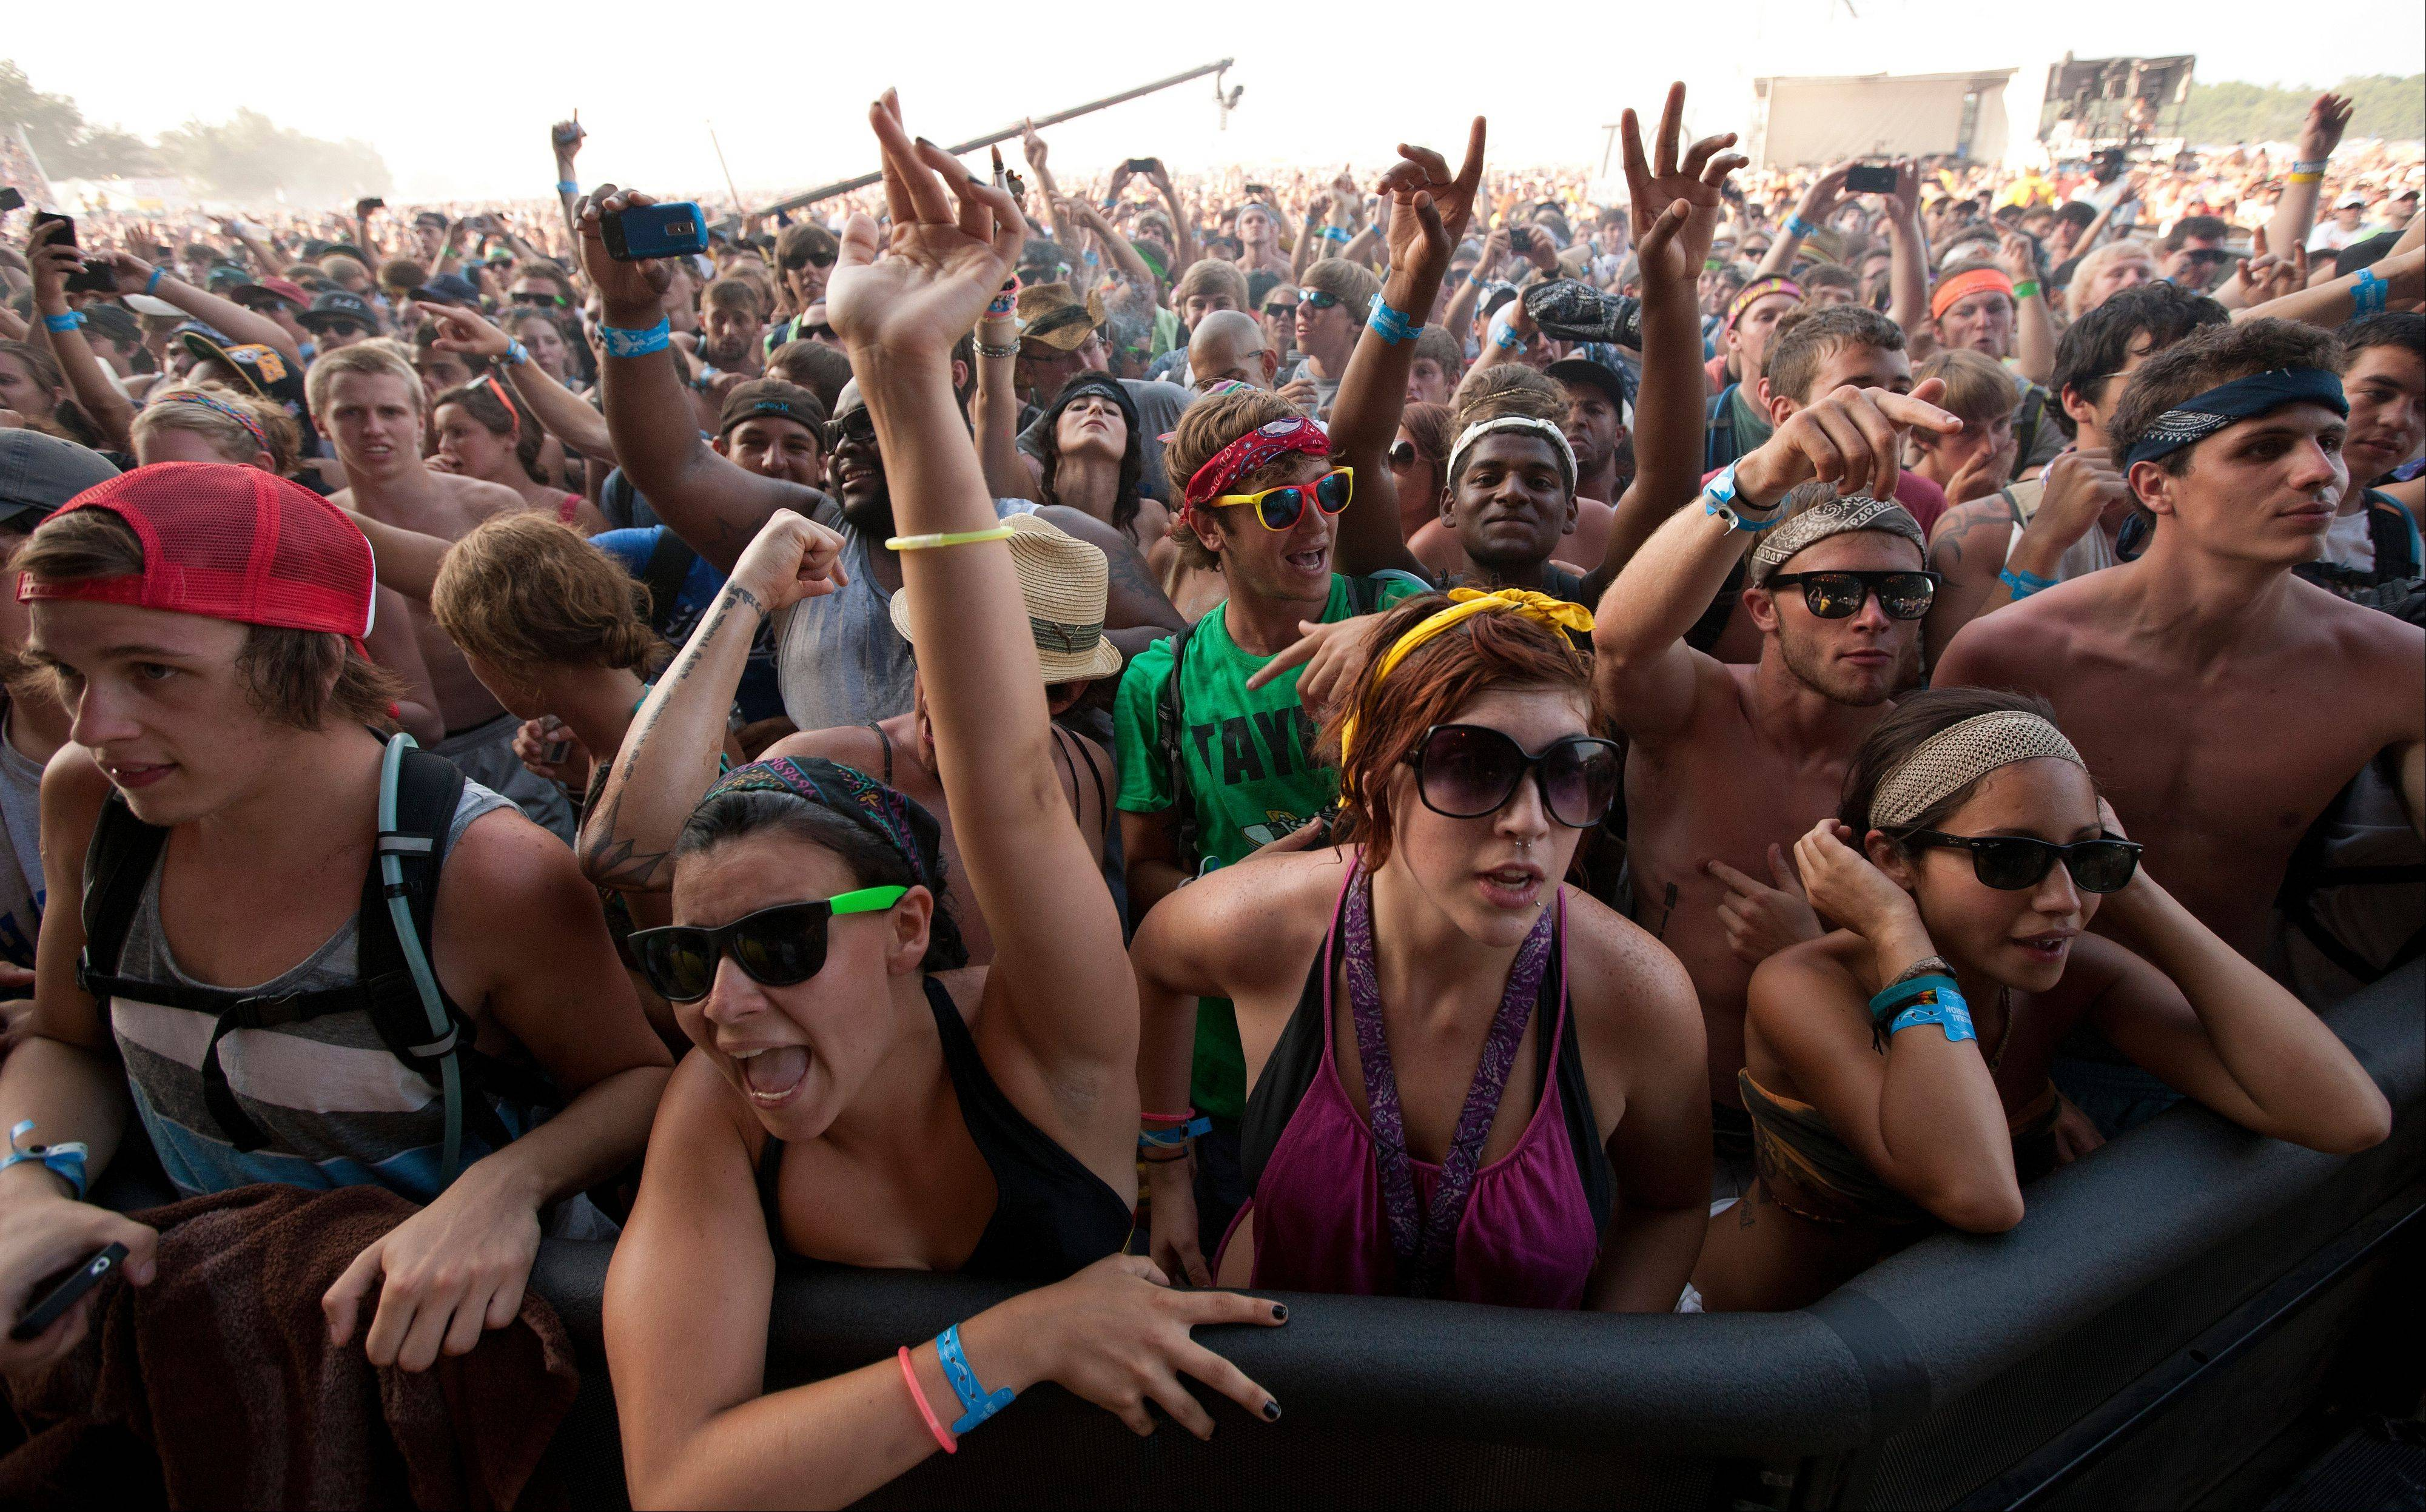 Music fans gather to watch Wiz Khalifa during the Bonnaroo Music and Arts Festival in Manchester, Tenn.